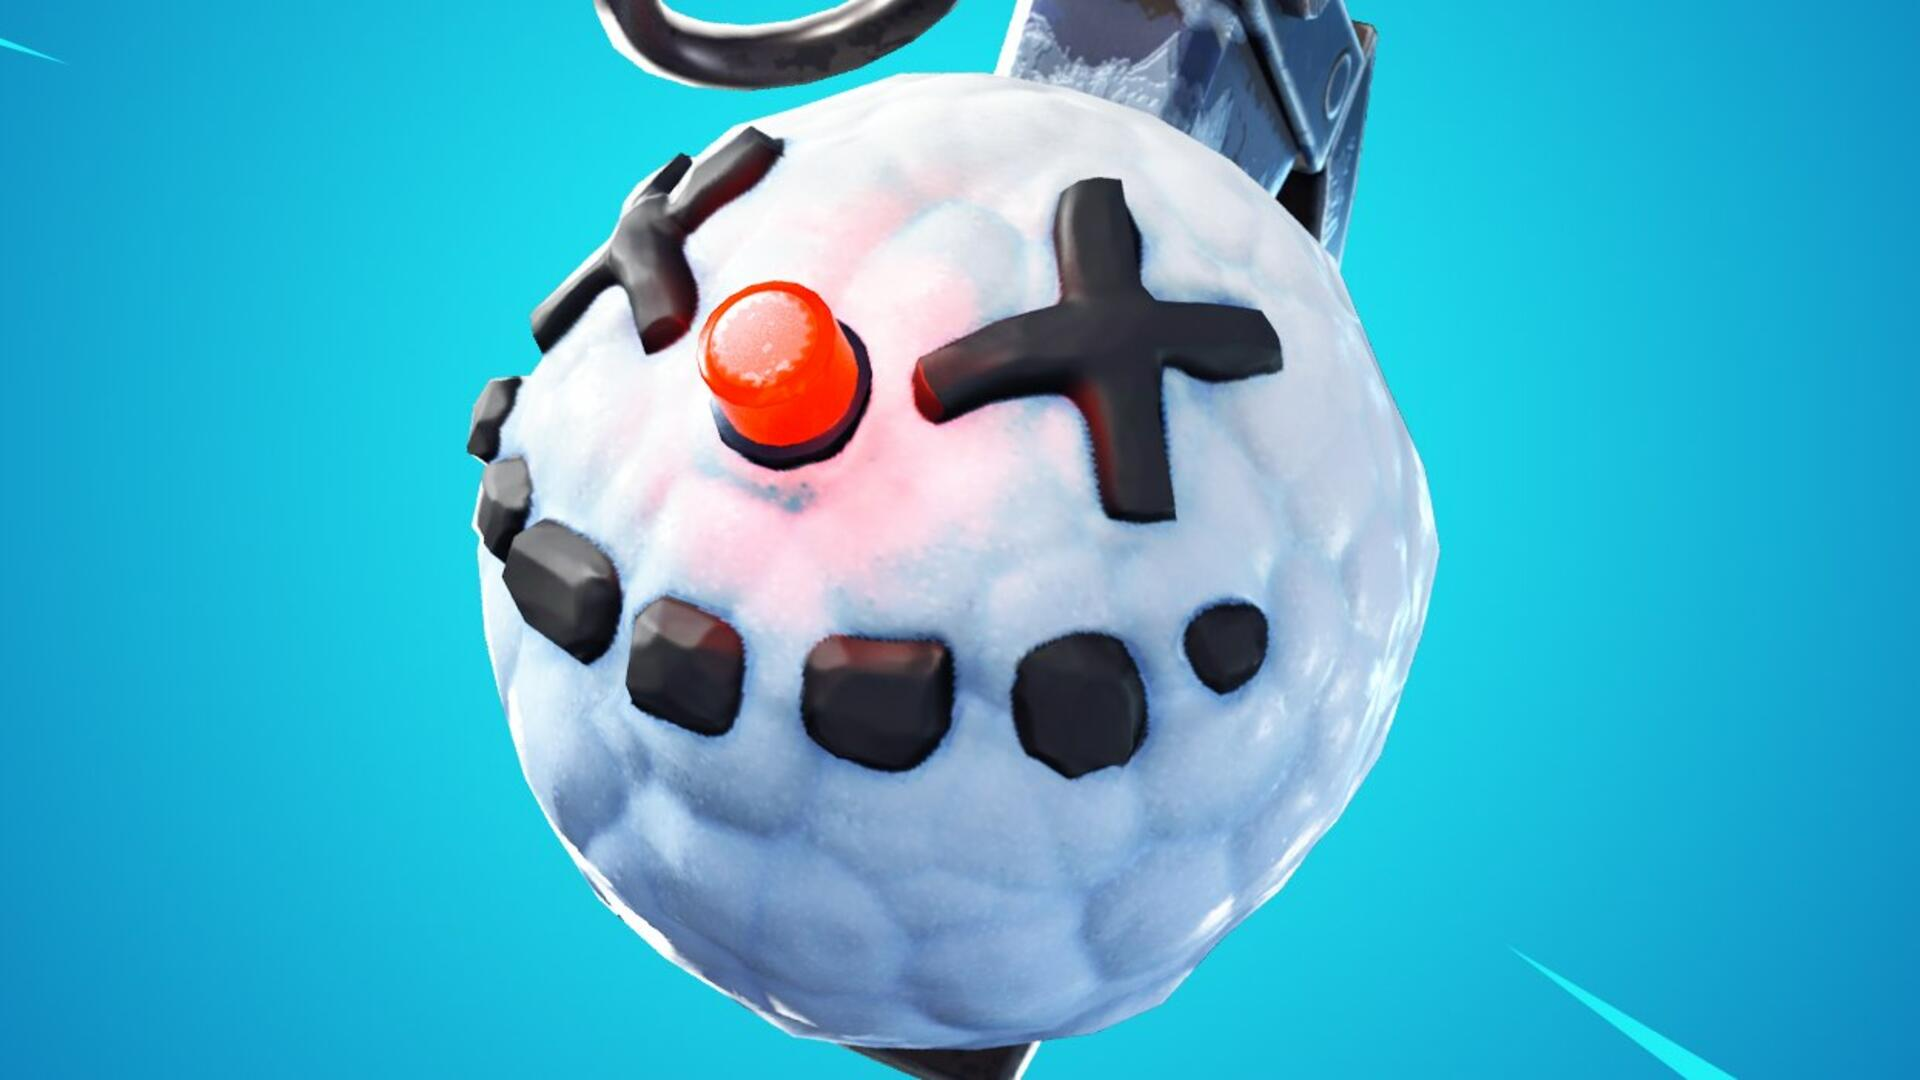 Fortnite V7.30 Patch Notes: New Grenade, Mobile Controller Support, and Switch Resolution Increase